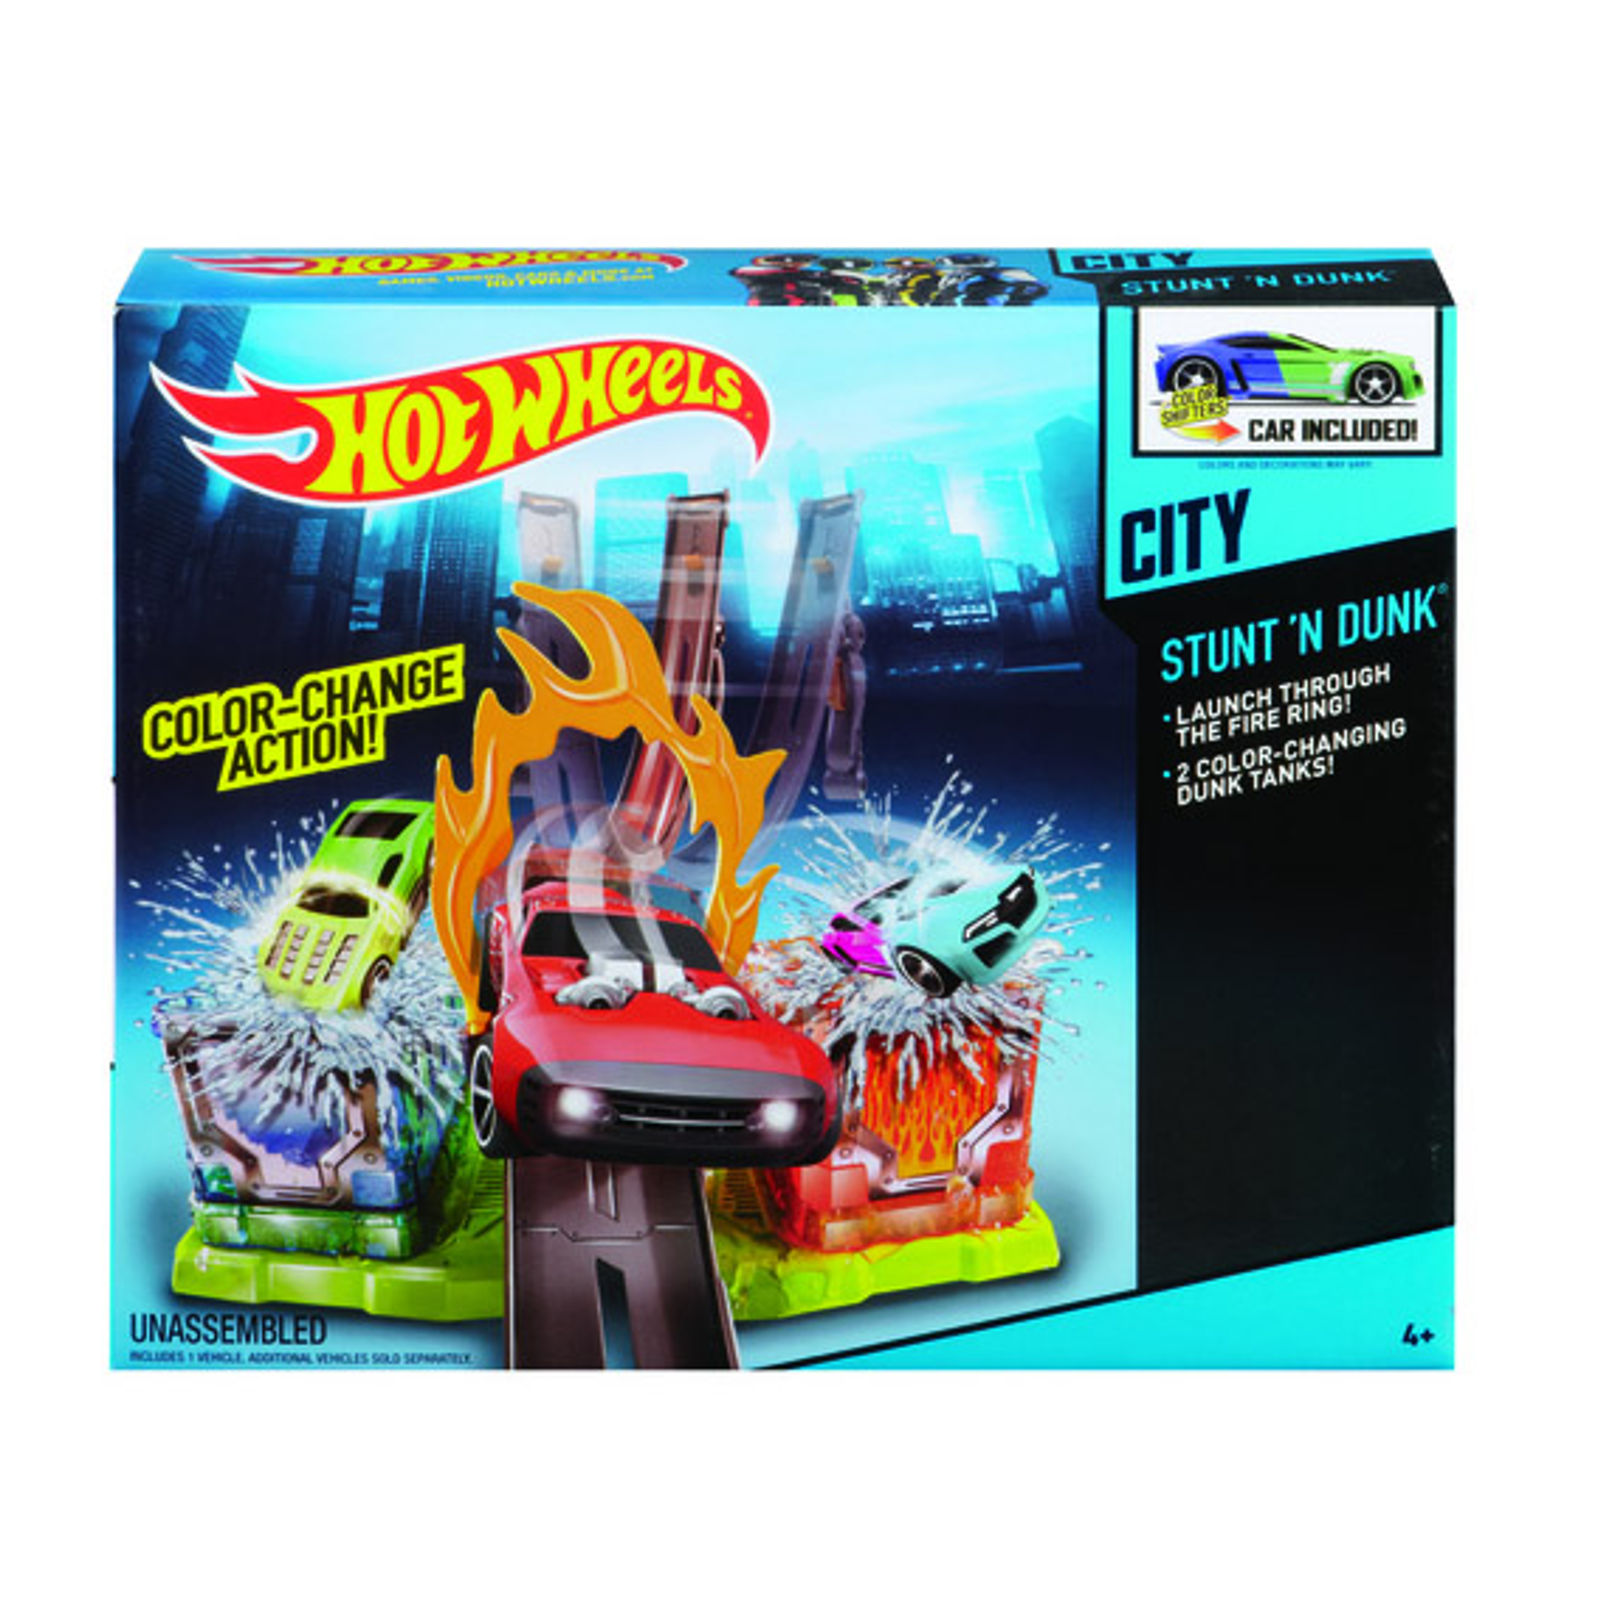 ������� ����� Hot Wheels �������� ������ ����� Color Shifters Stunt'n Dunk